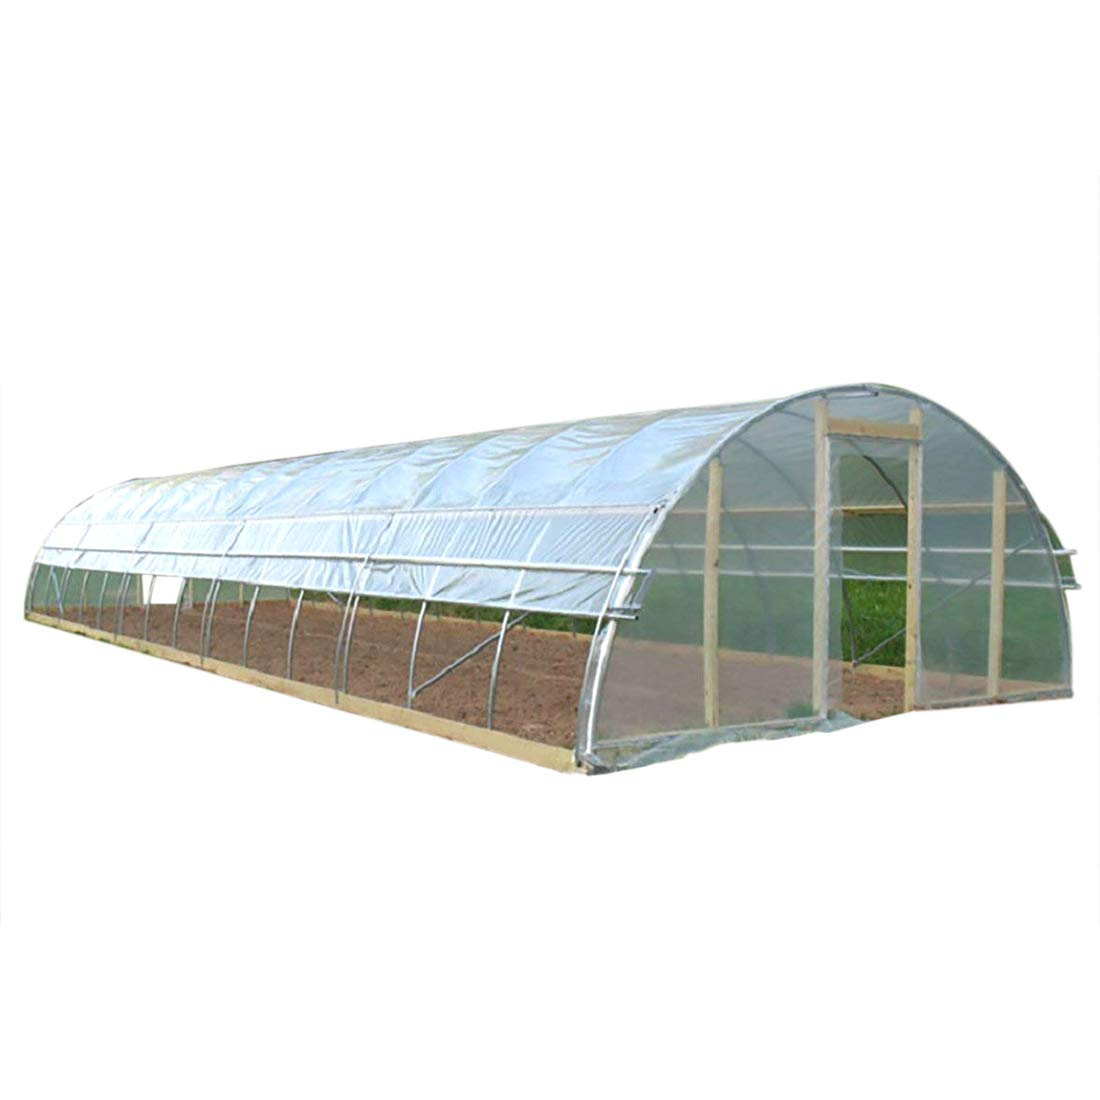 Agfabric 5.5Mil Plastic Covering Clear Polyethylene Greenhouse Film UV Resistant for Grow Tunnel and Garden Hoop, Plant Cover&Frost Blanket for Season Extension, 12x30ft